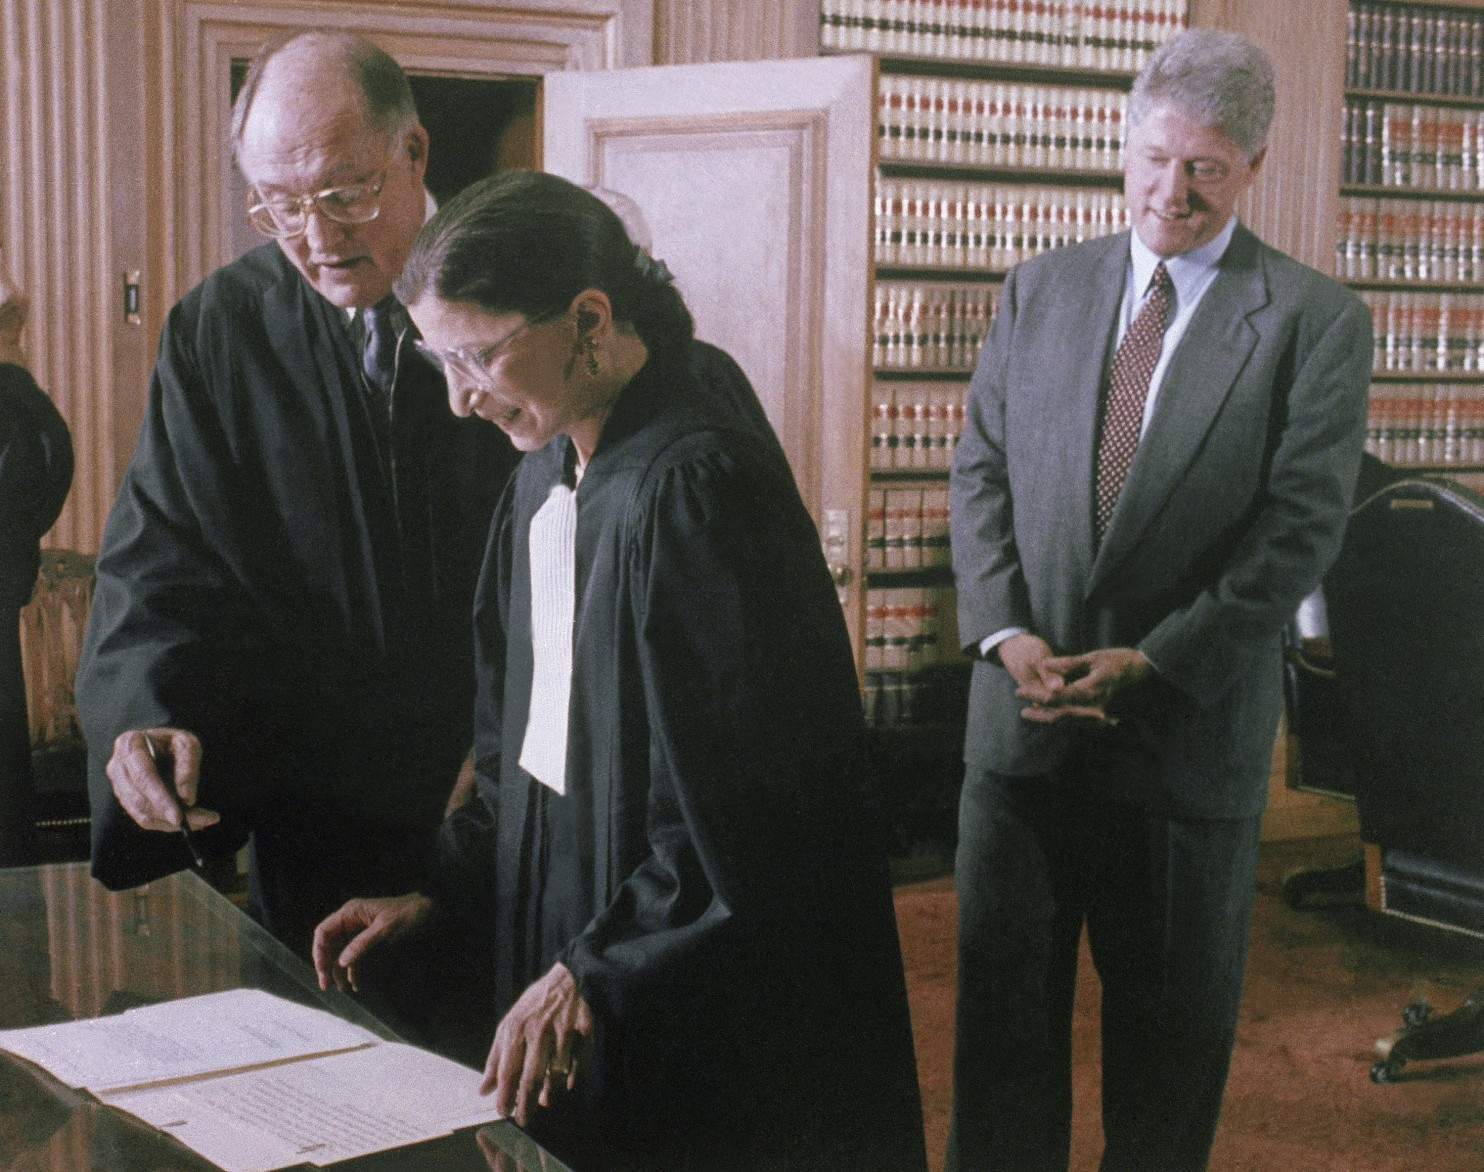 Clinton looks on as Bader signs the Court's Oath, October 1, 1993.  Photo by Ken Heinen